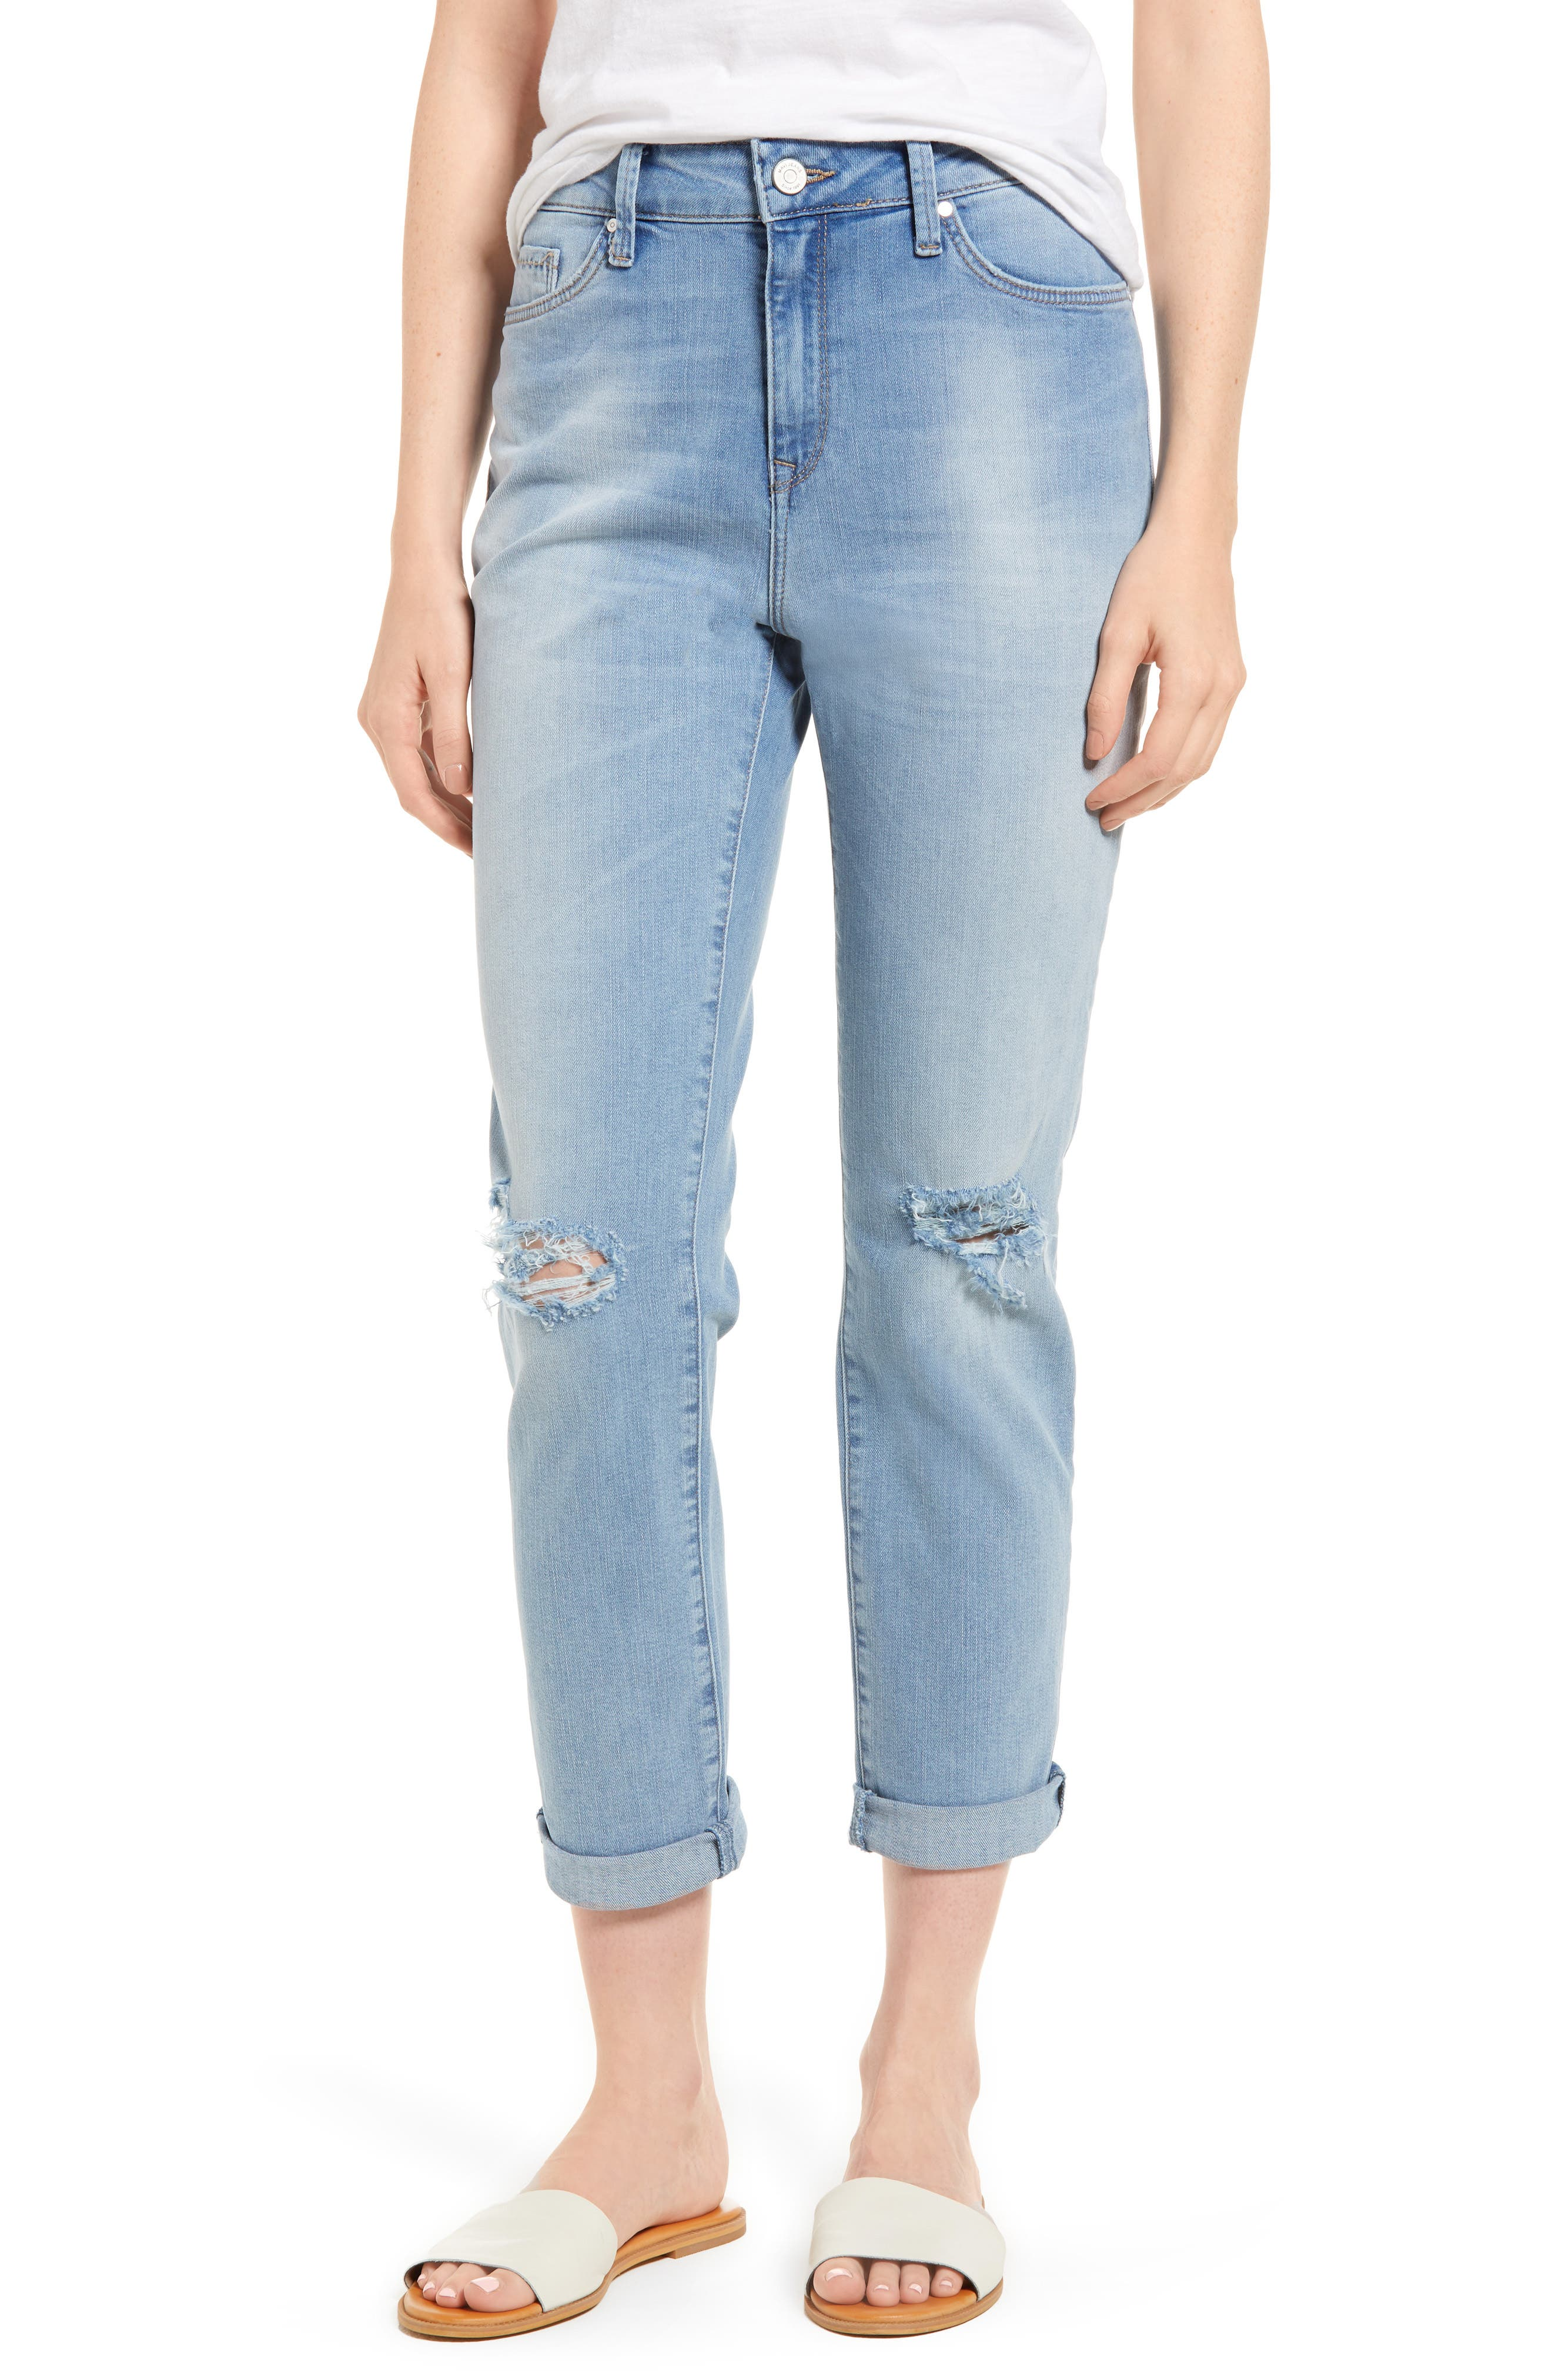 Lea Boyfriend Ripped Jeans,                         Main,                         color, Light Ripped Vintage